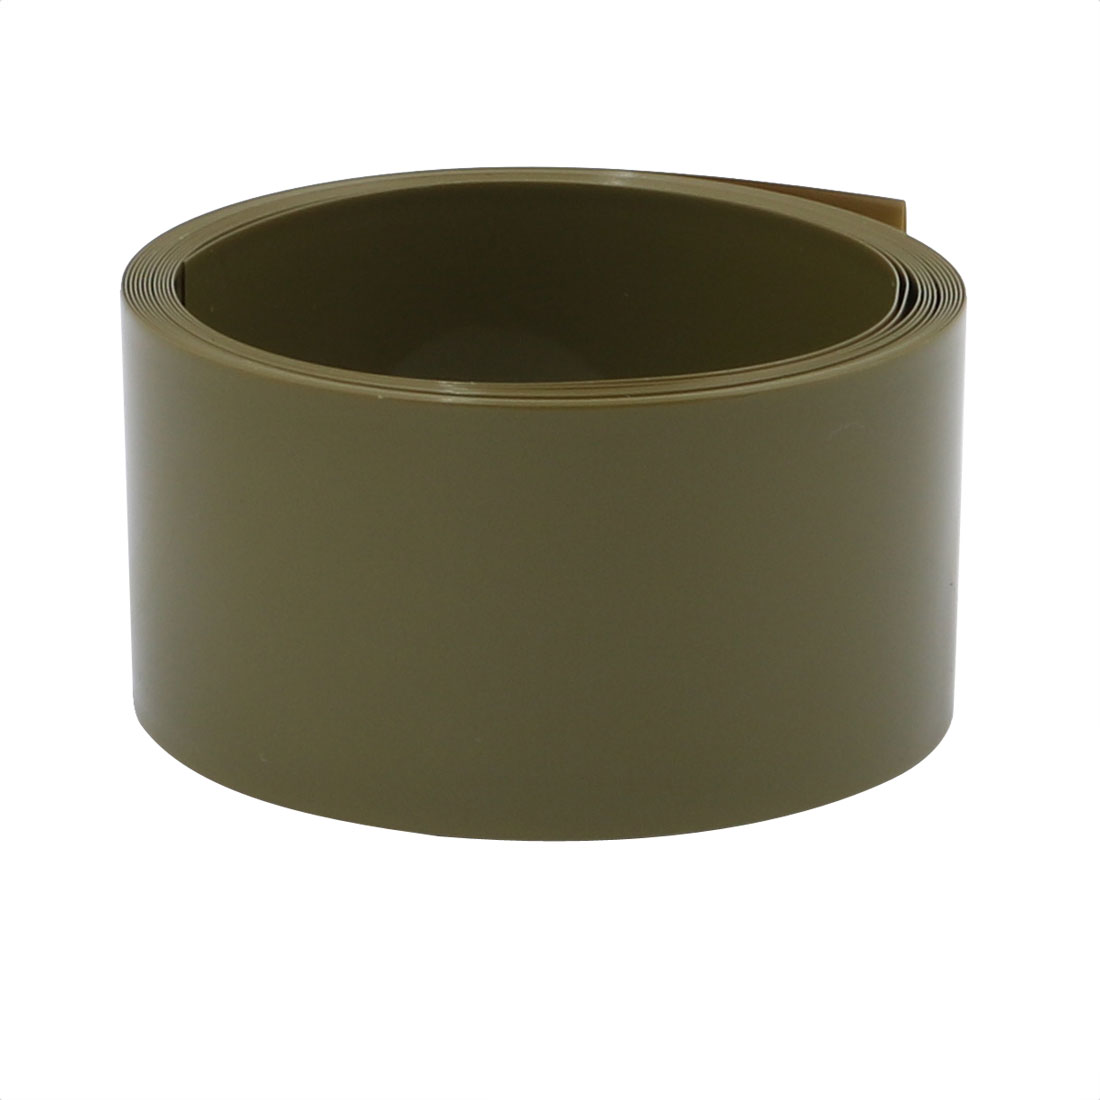 29.5mm Flat Width 2M Long PVC Heat Shrinkable Tube Army Green for 18650 Battery